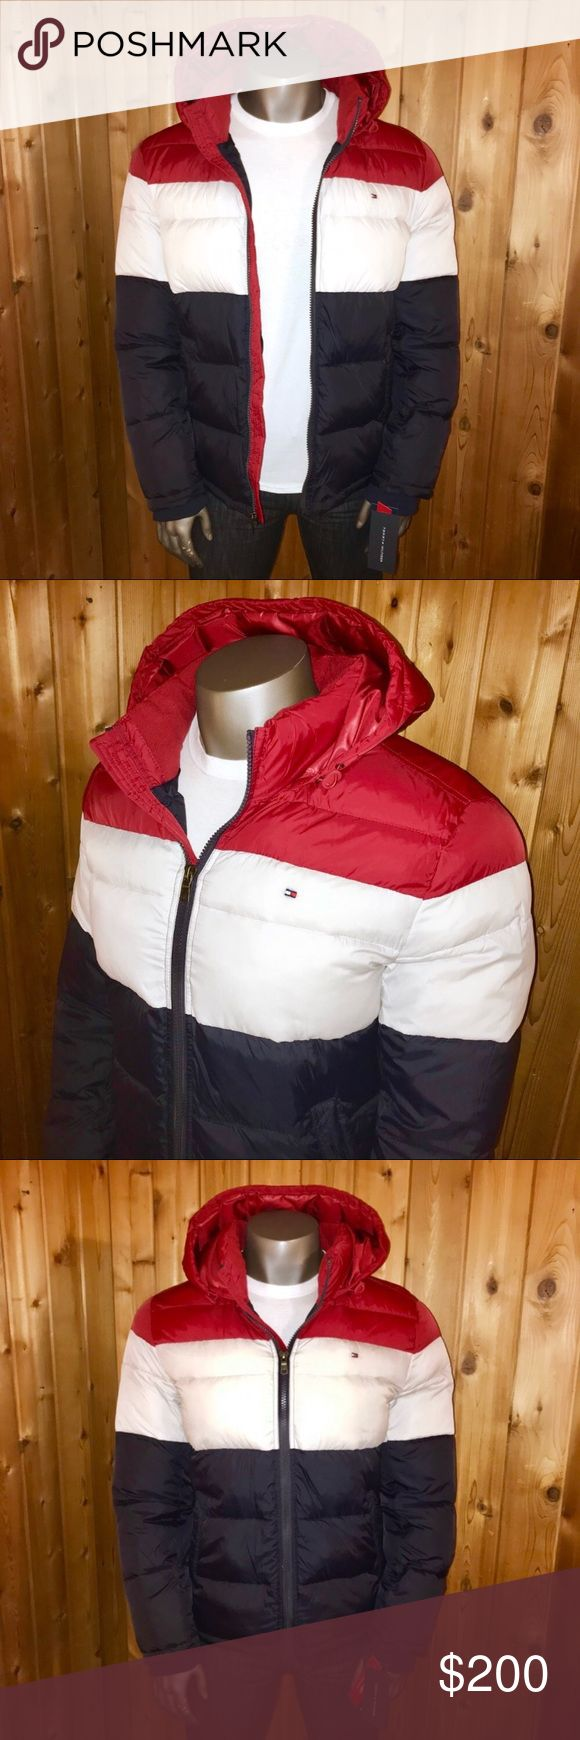 NWT! Tommy Hilfiger Hooded Men's Small Down Jacket Brand New With Tags!  Size: U.S. Men's Small Brand: Tommy Hilfiger Color: Navy Blue/Red/White Classic Mini Flag Logo Ultra Loft Down Feather Insulation Alternative Wind Resistant Weather Technology Regular Fit Made in China  Jacket comes from a smoke and pet free home  Thanks for looking! Tommy Hilfiger Jackets & Coats Puffers